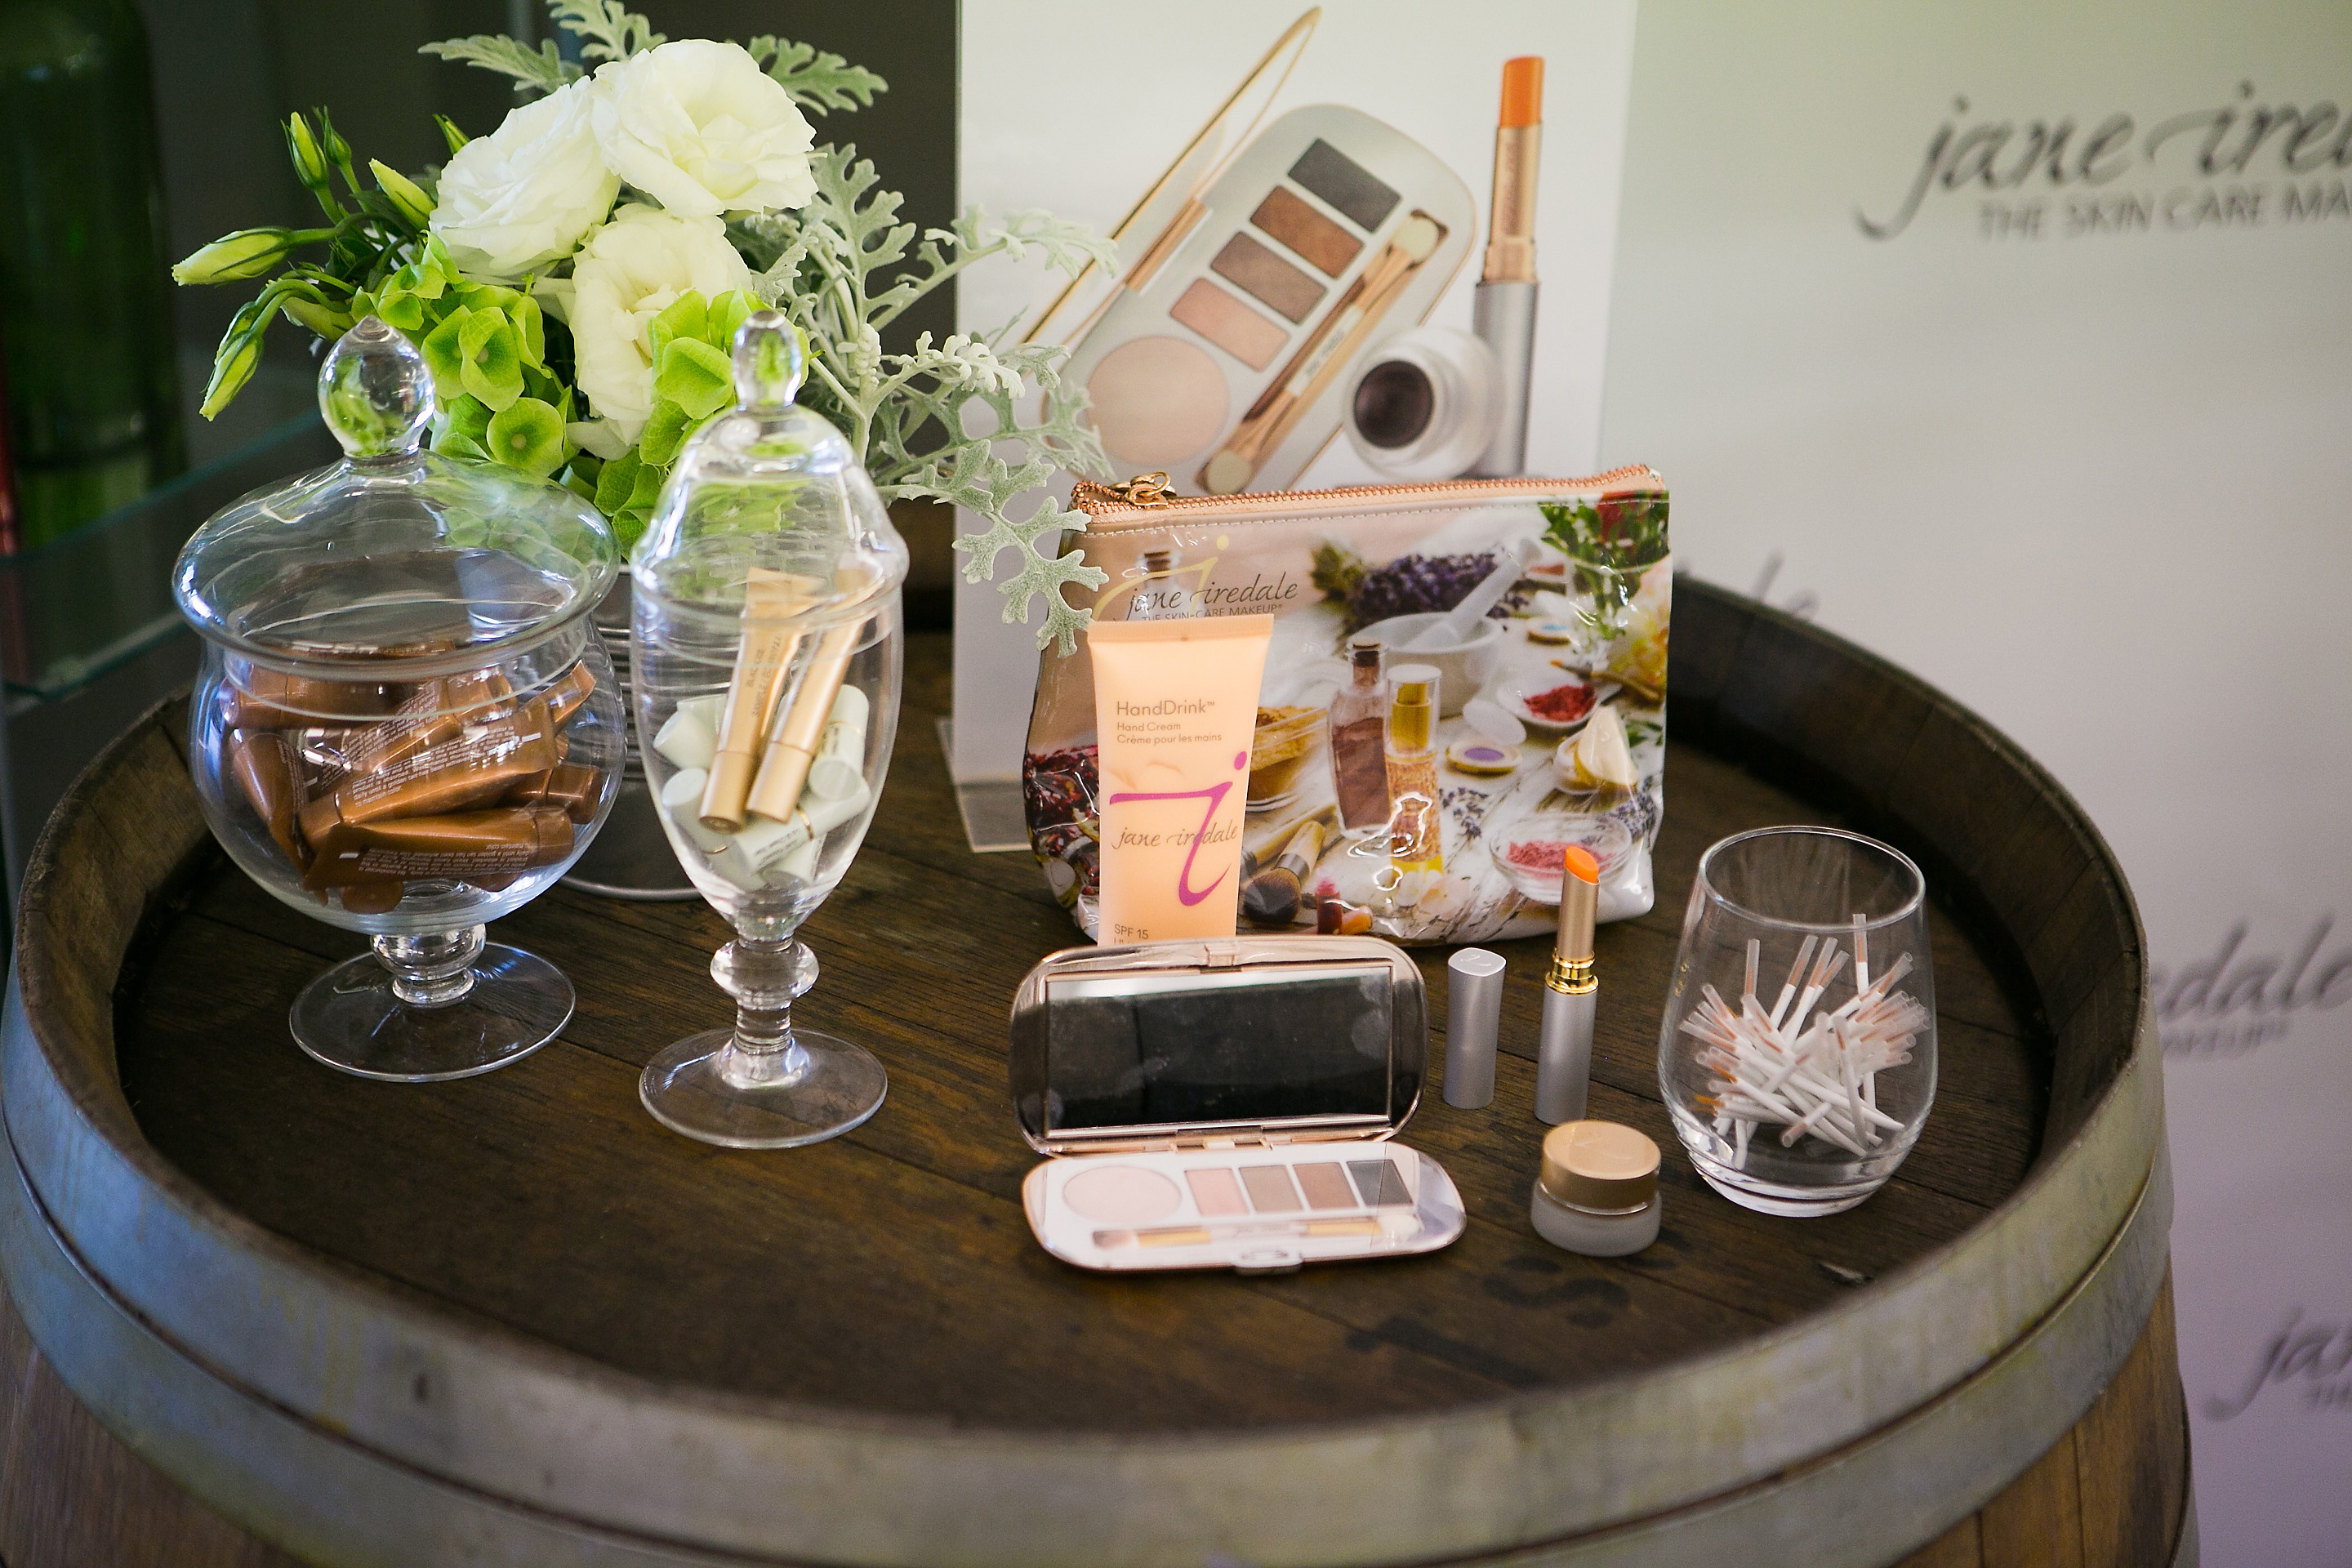 Jane Iredale Country Weekend Collection - Share to win!